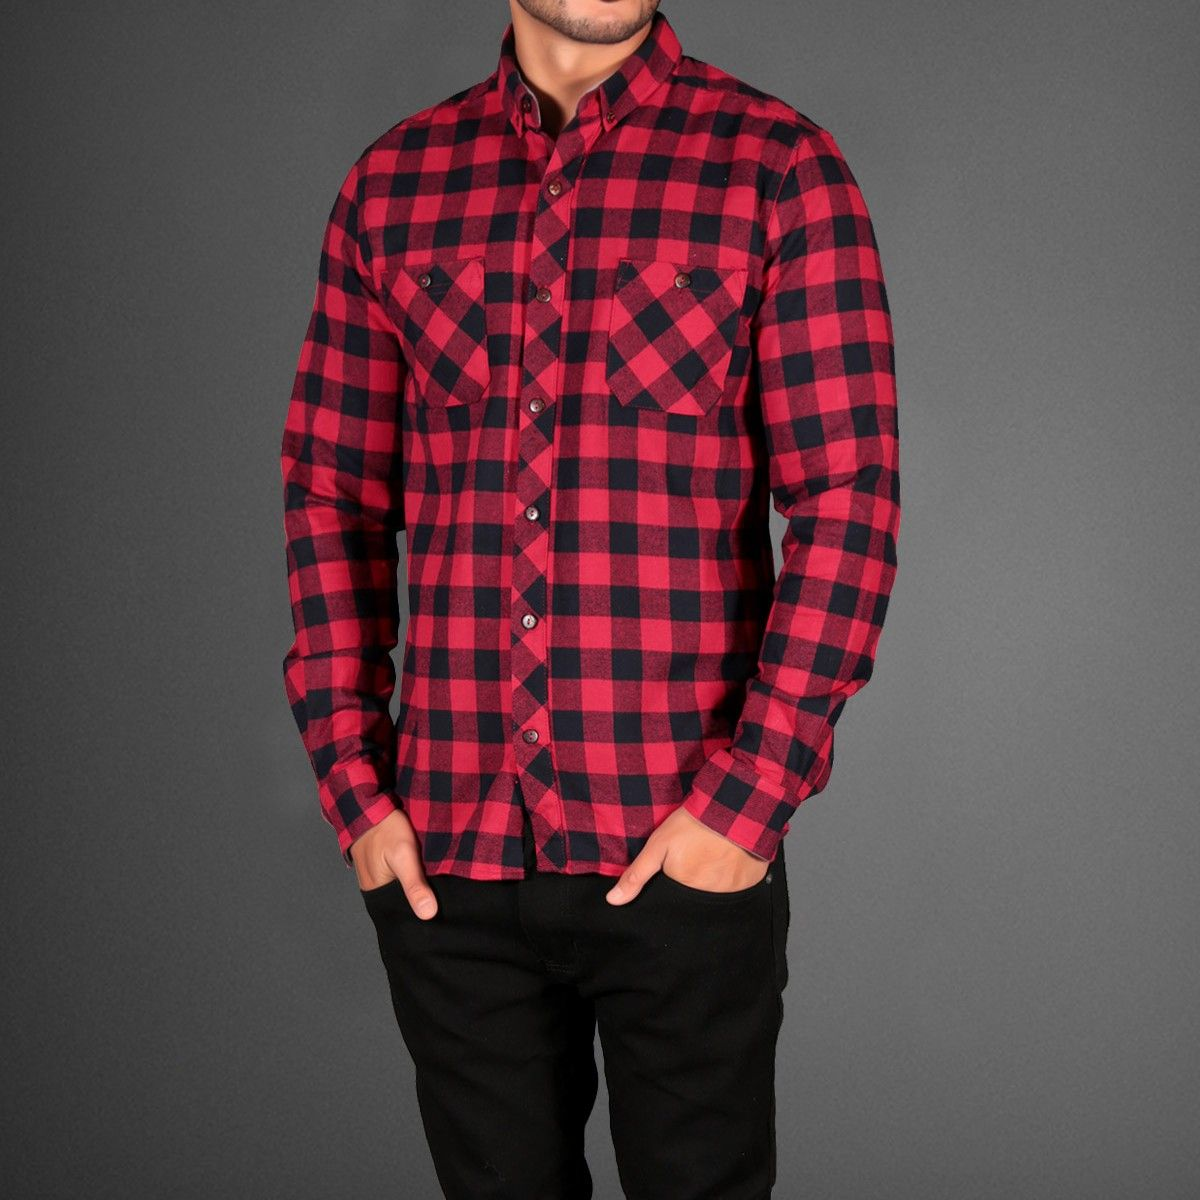 Red And Black Plaid Flannel Check Shirt | Dope Swag | Pinterest